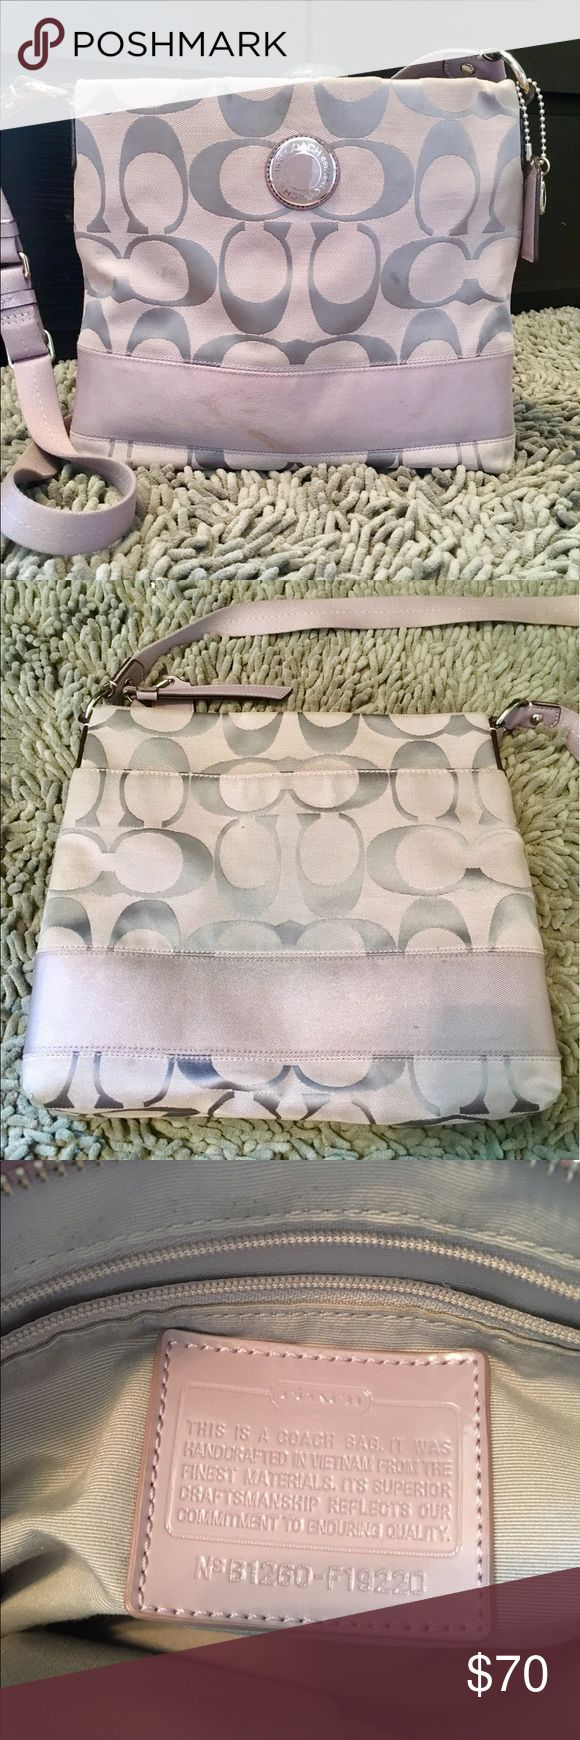 Coach Satchel Over the shoulder light purple coach satchel. Has an adjustable strap and organizing pockets on the inside! Outside inner large pocket for easy access! Lightly used Coach Bags Satchels